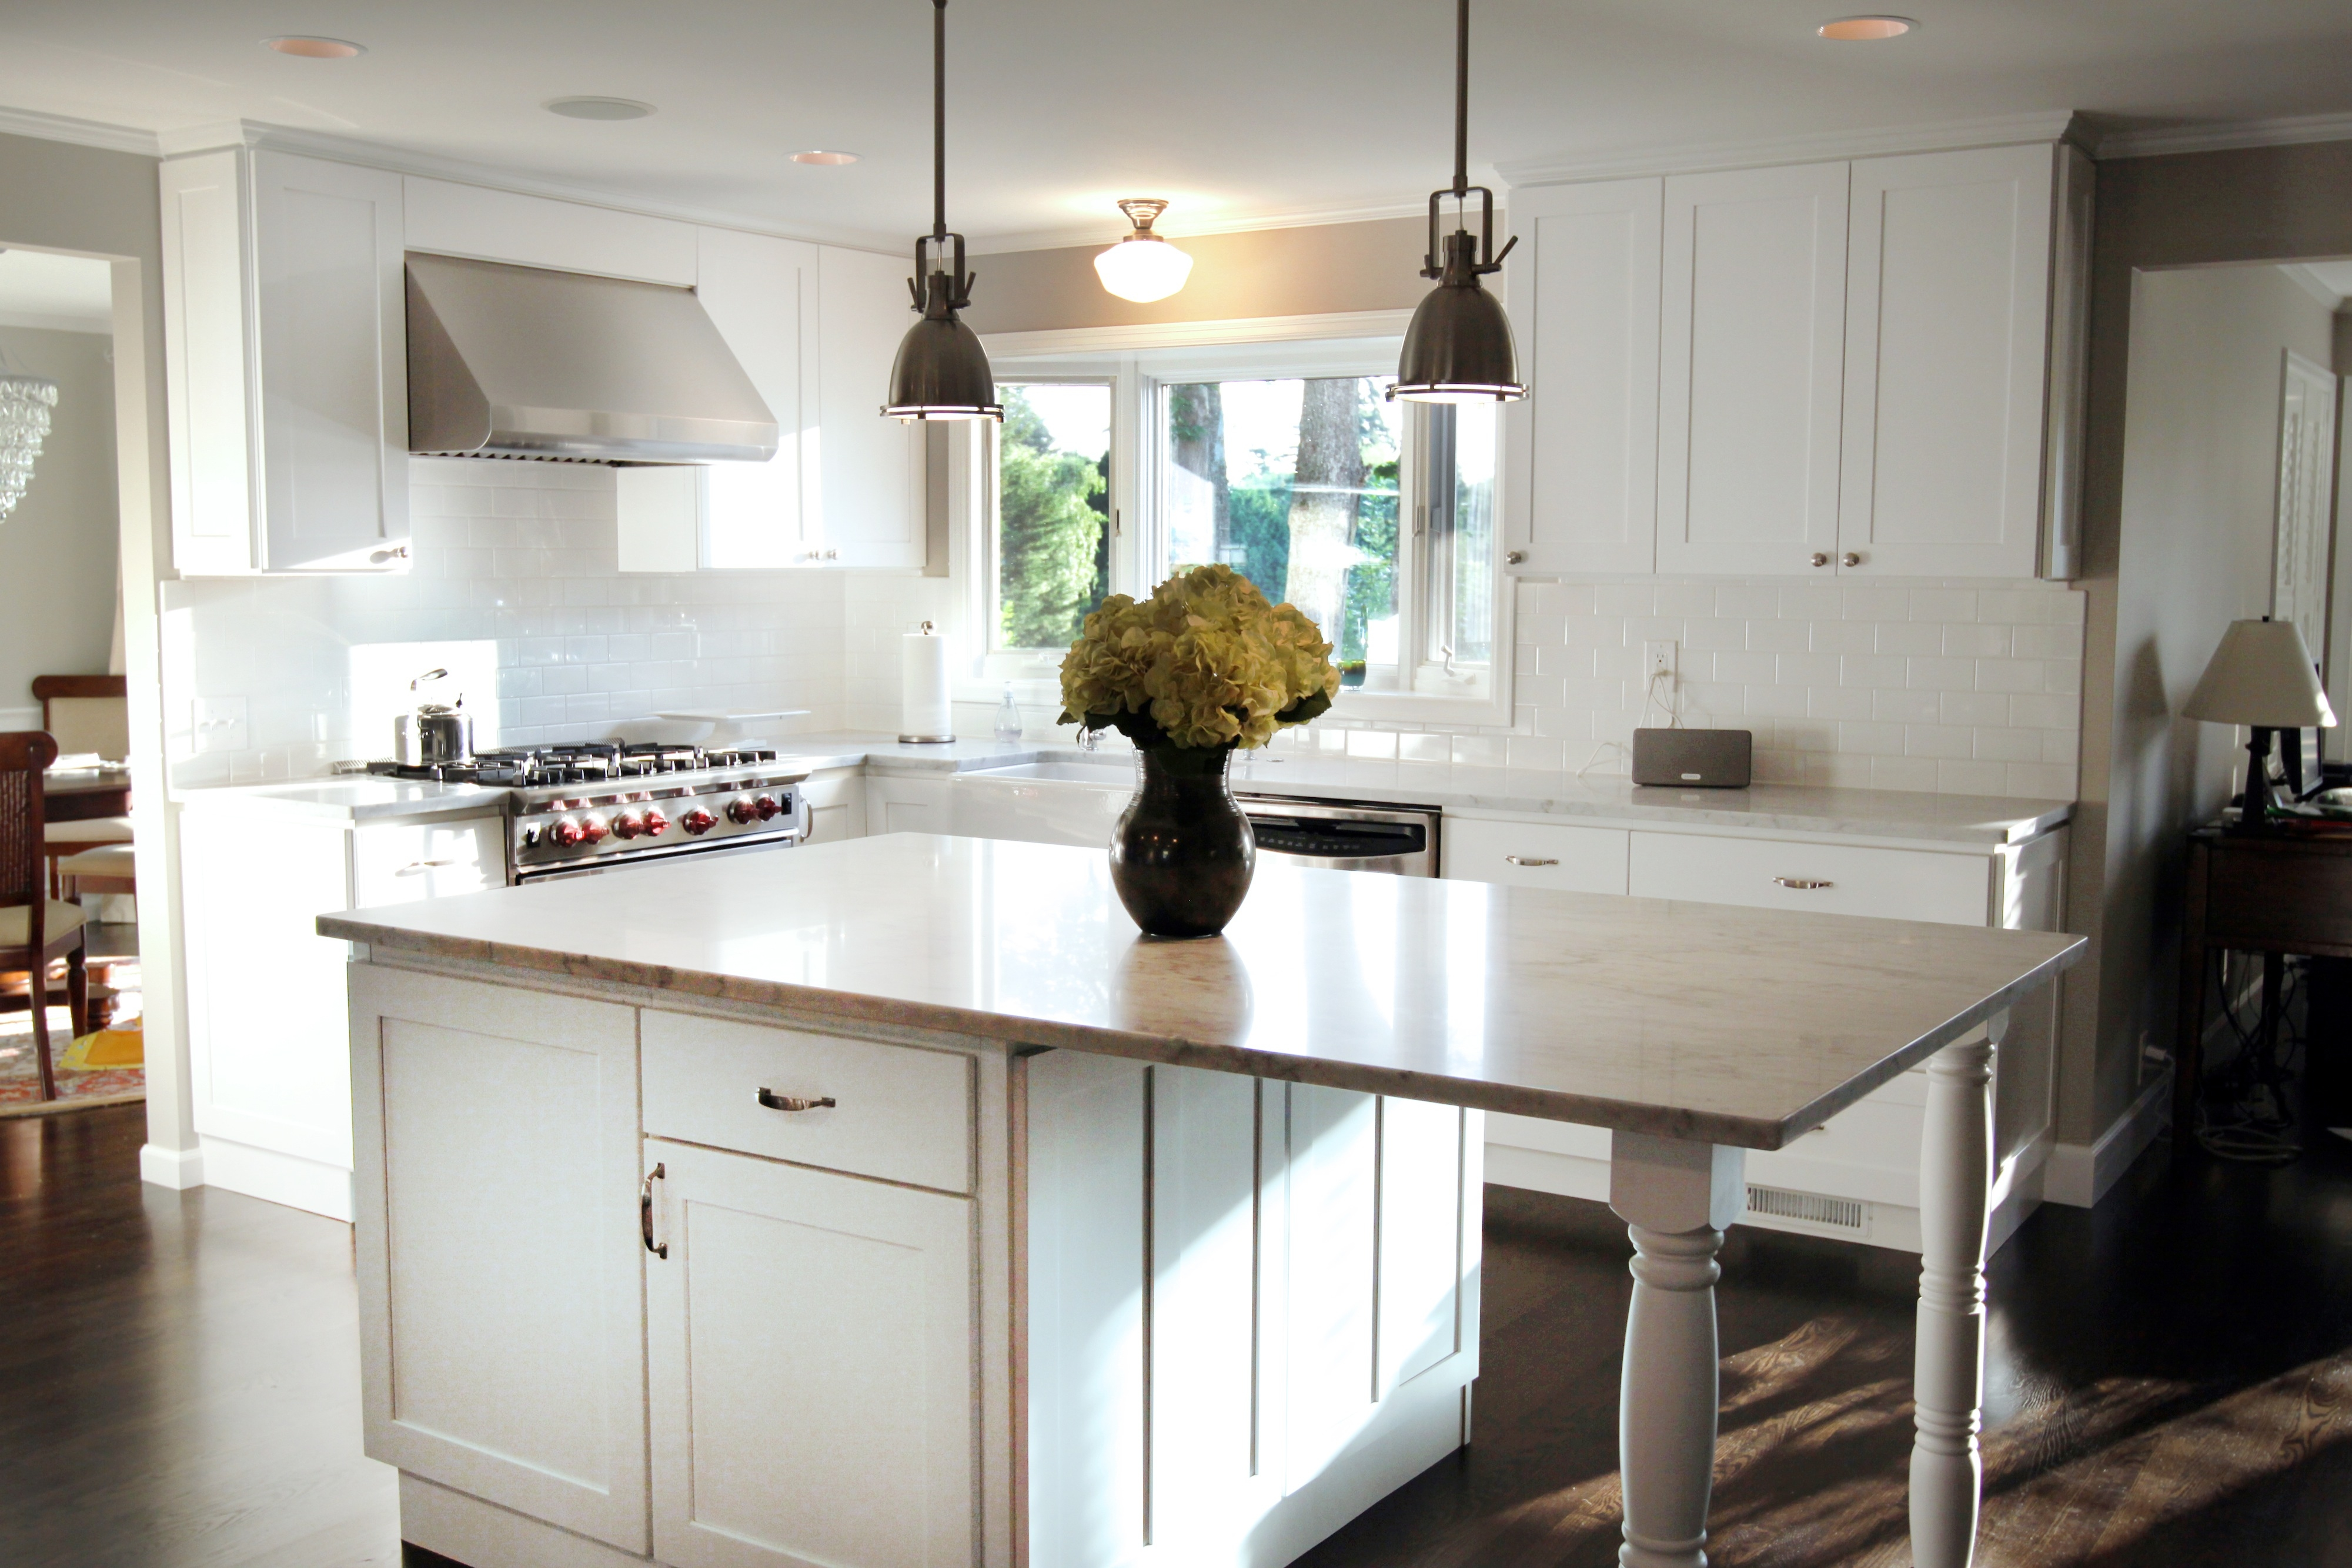 White Kitchen Cabinets With Legs4000 X 2667